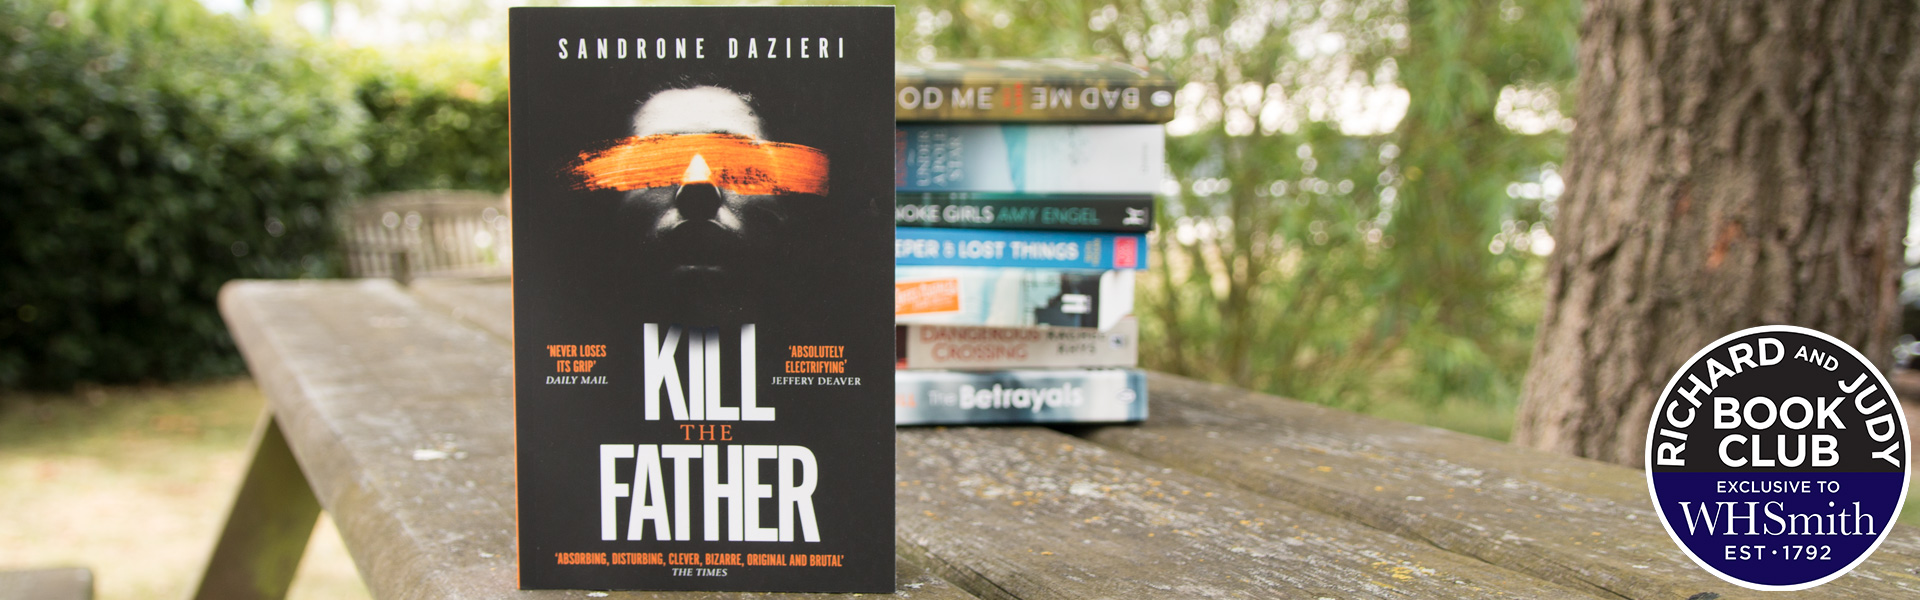 Richard and Judy Introduce Kill the Father by Sandrone Dazieri